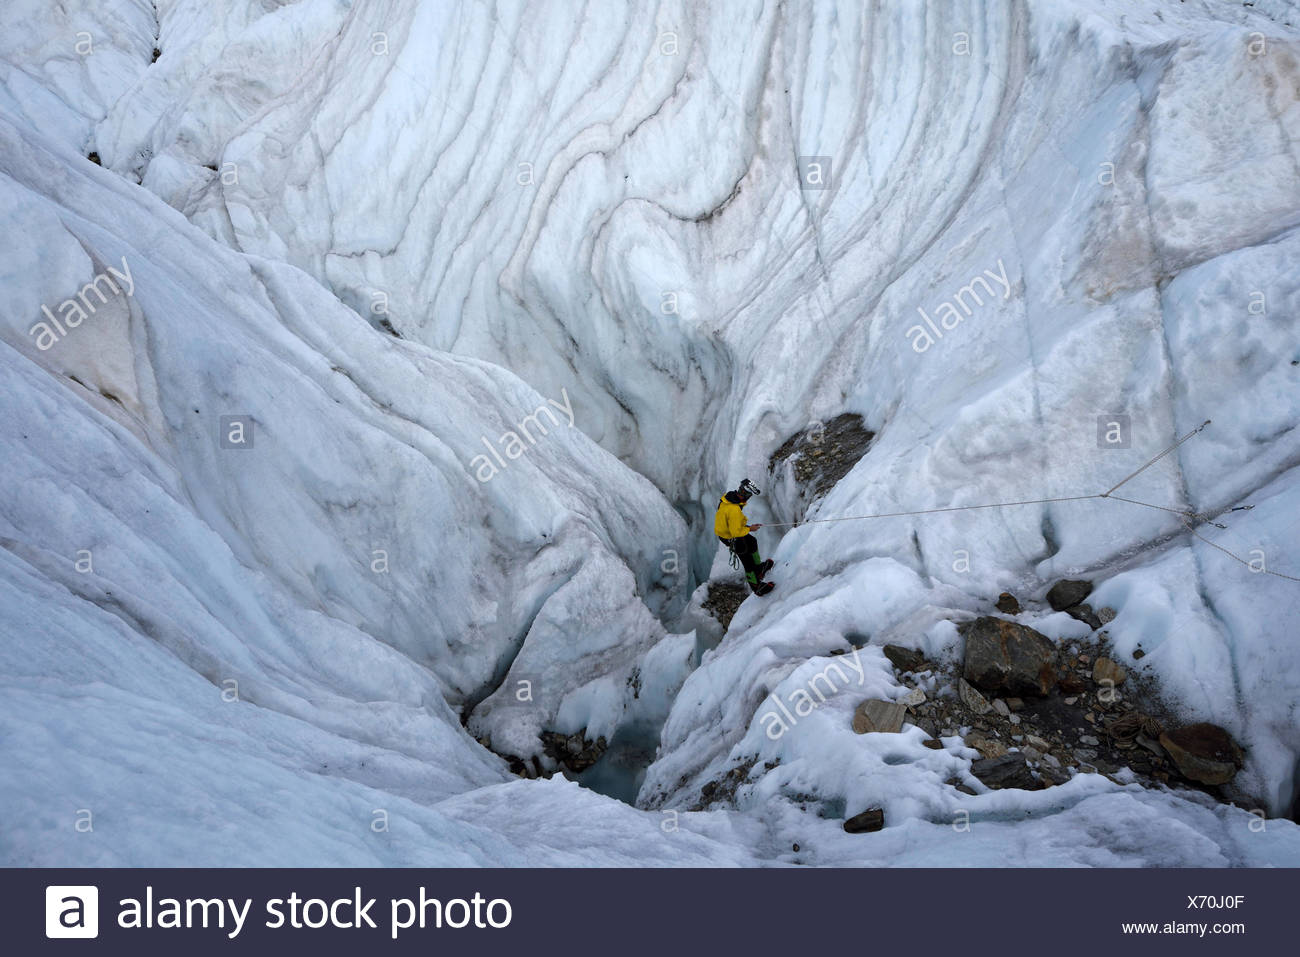 Italian cave explorer and Rolex Award 2014 winner Francesco Sauro rigs the ropes and begins his descent down into a large moulin. Stock Photo